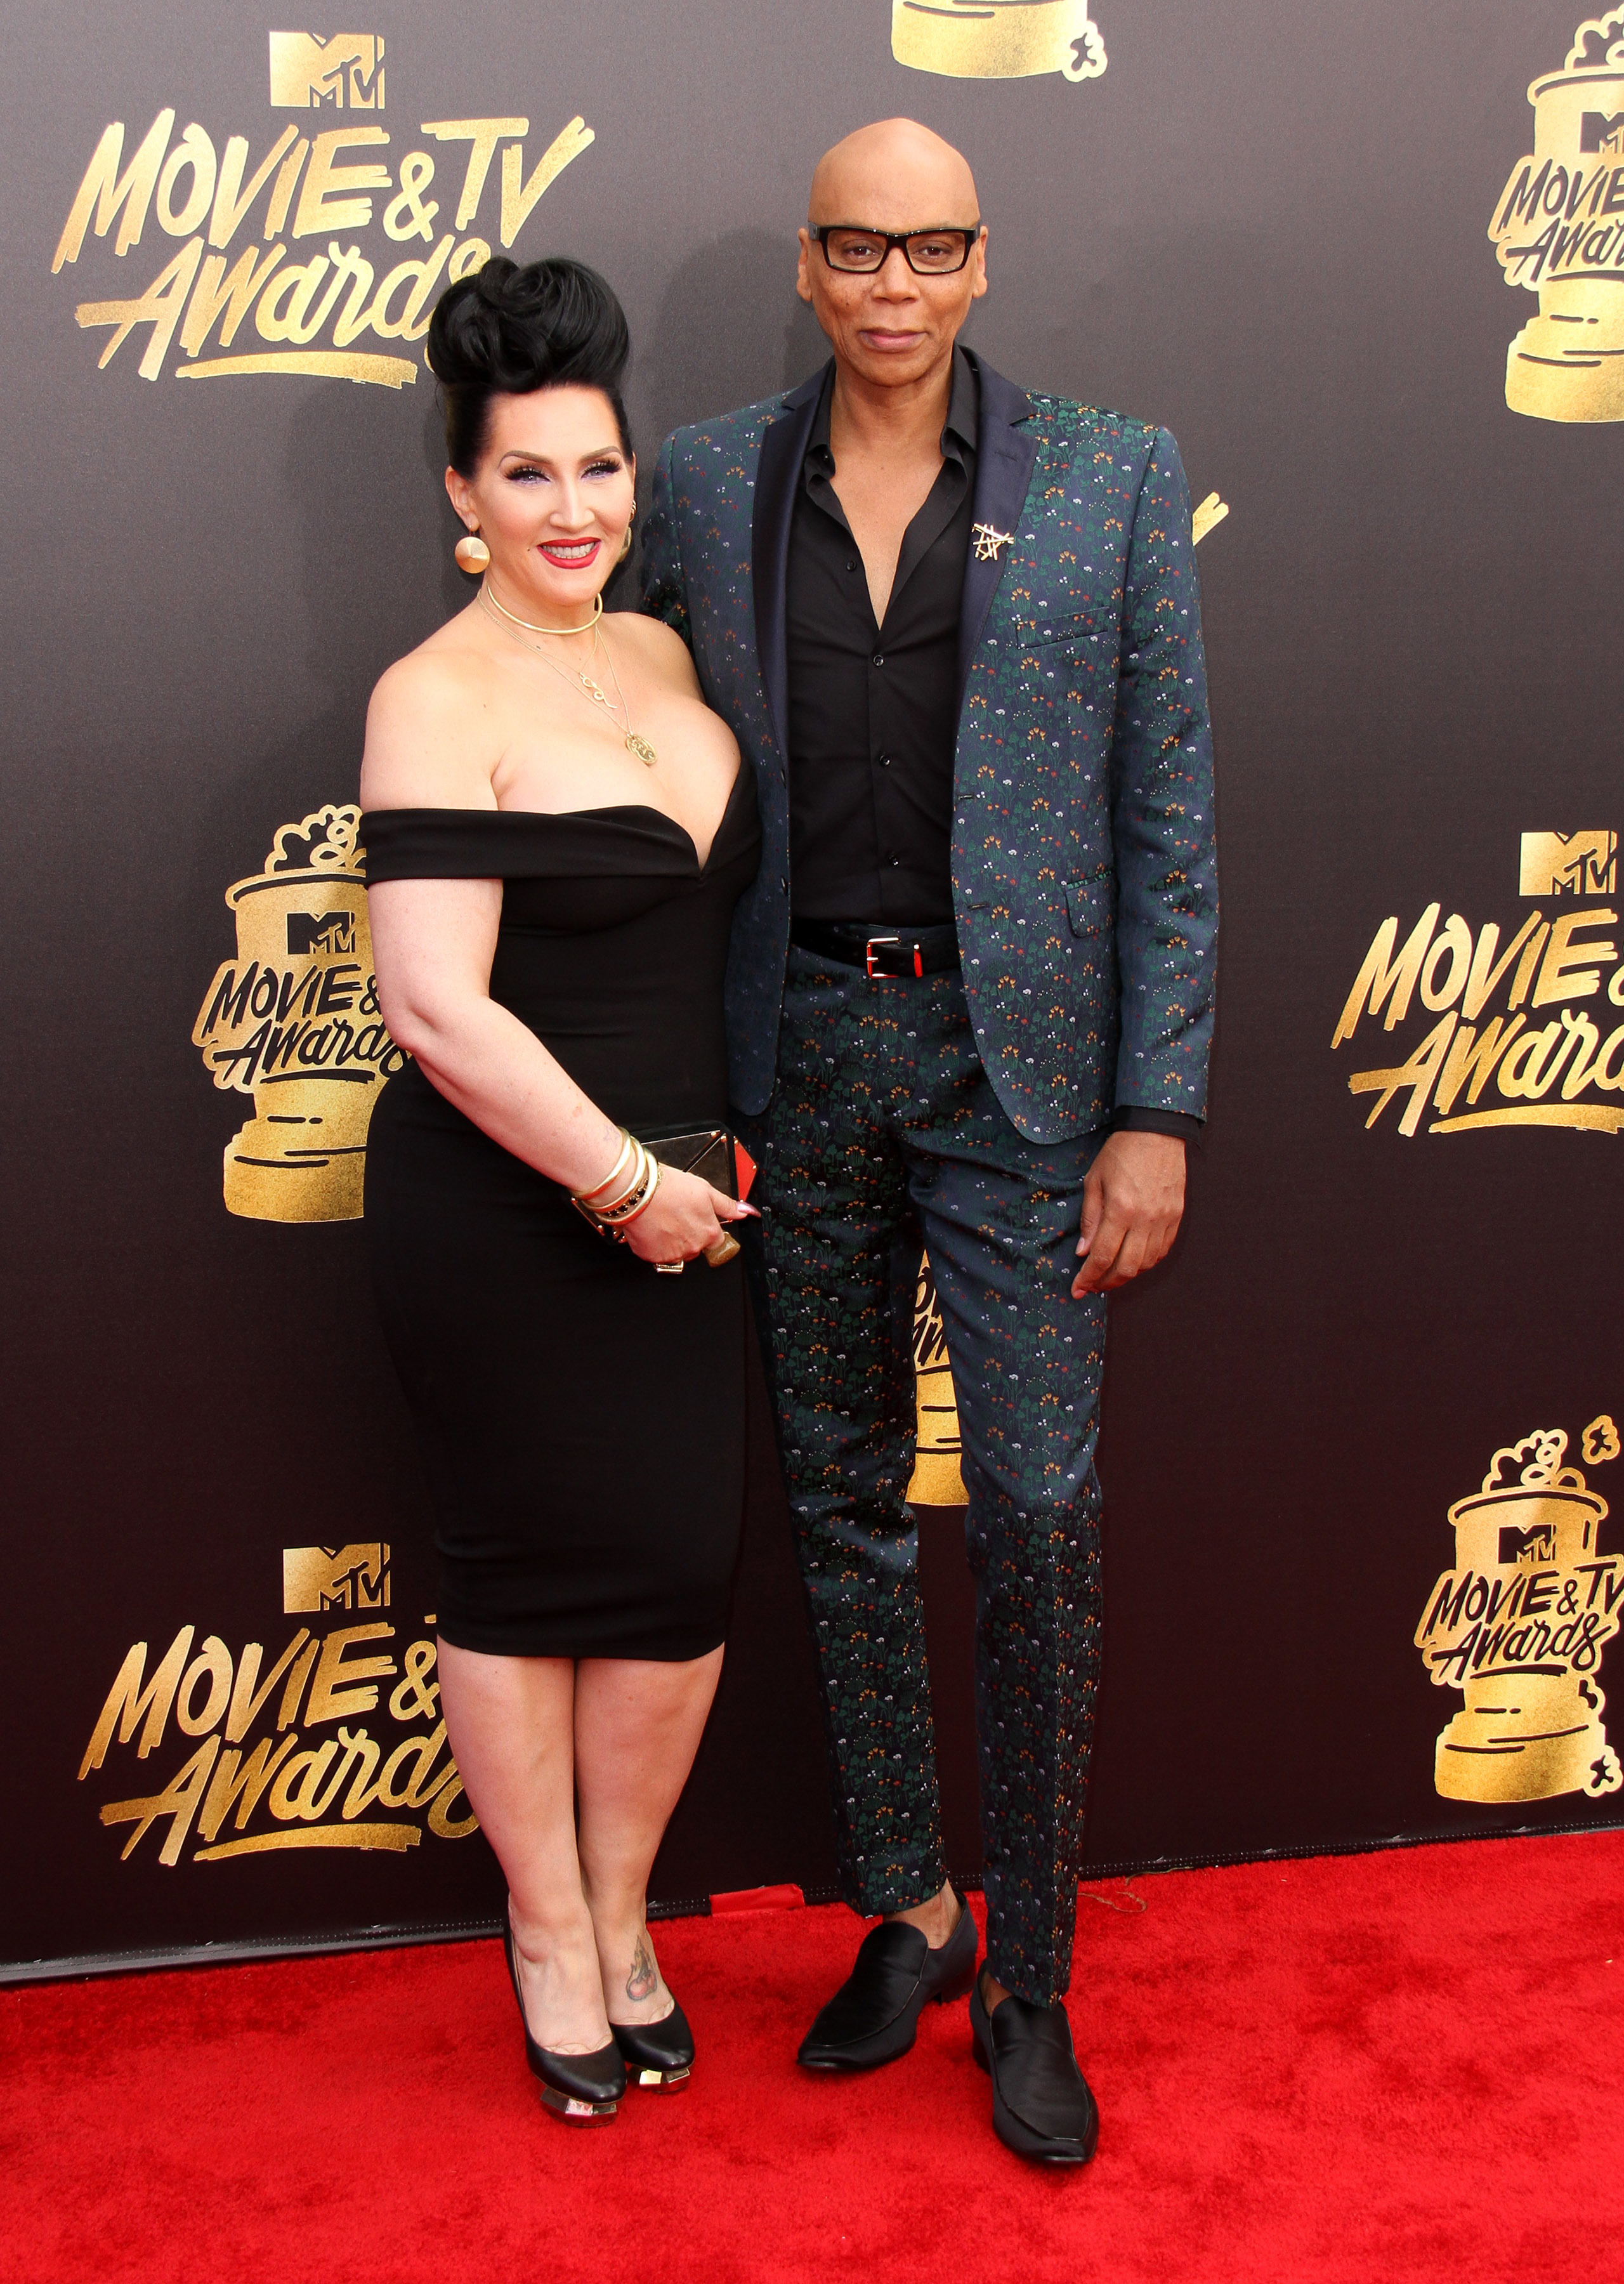 2017 MTV Movie & TV Awards - Arrivals held at the Shrine Auditorium in Los Angeles.                                    Featuring: RuPaul, Michelle Visage                  Where: Los Angeles, California, United States                  When: 07 May 2017                  Credit: Adriana M. Barraza/WENN.com